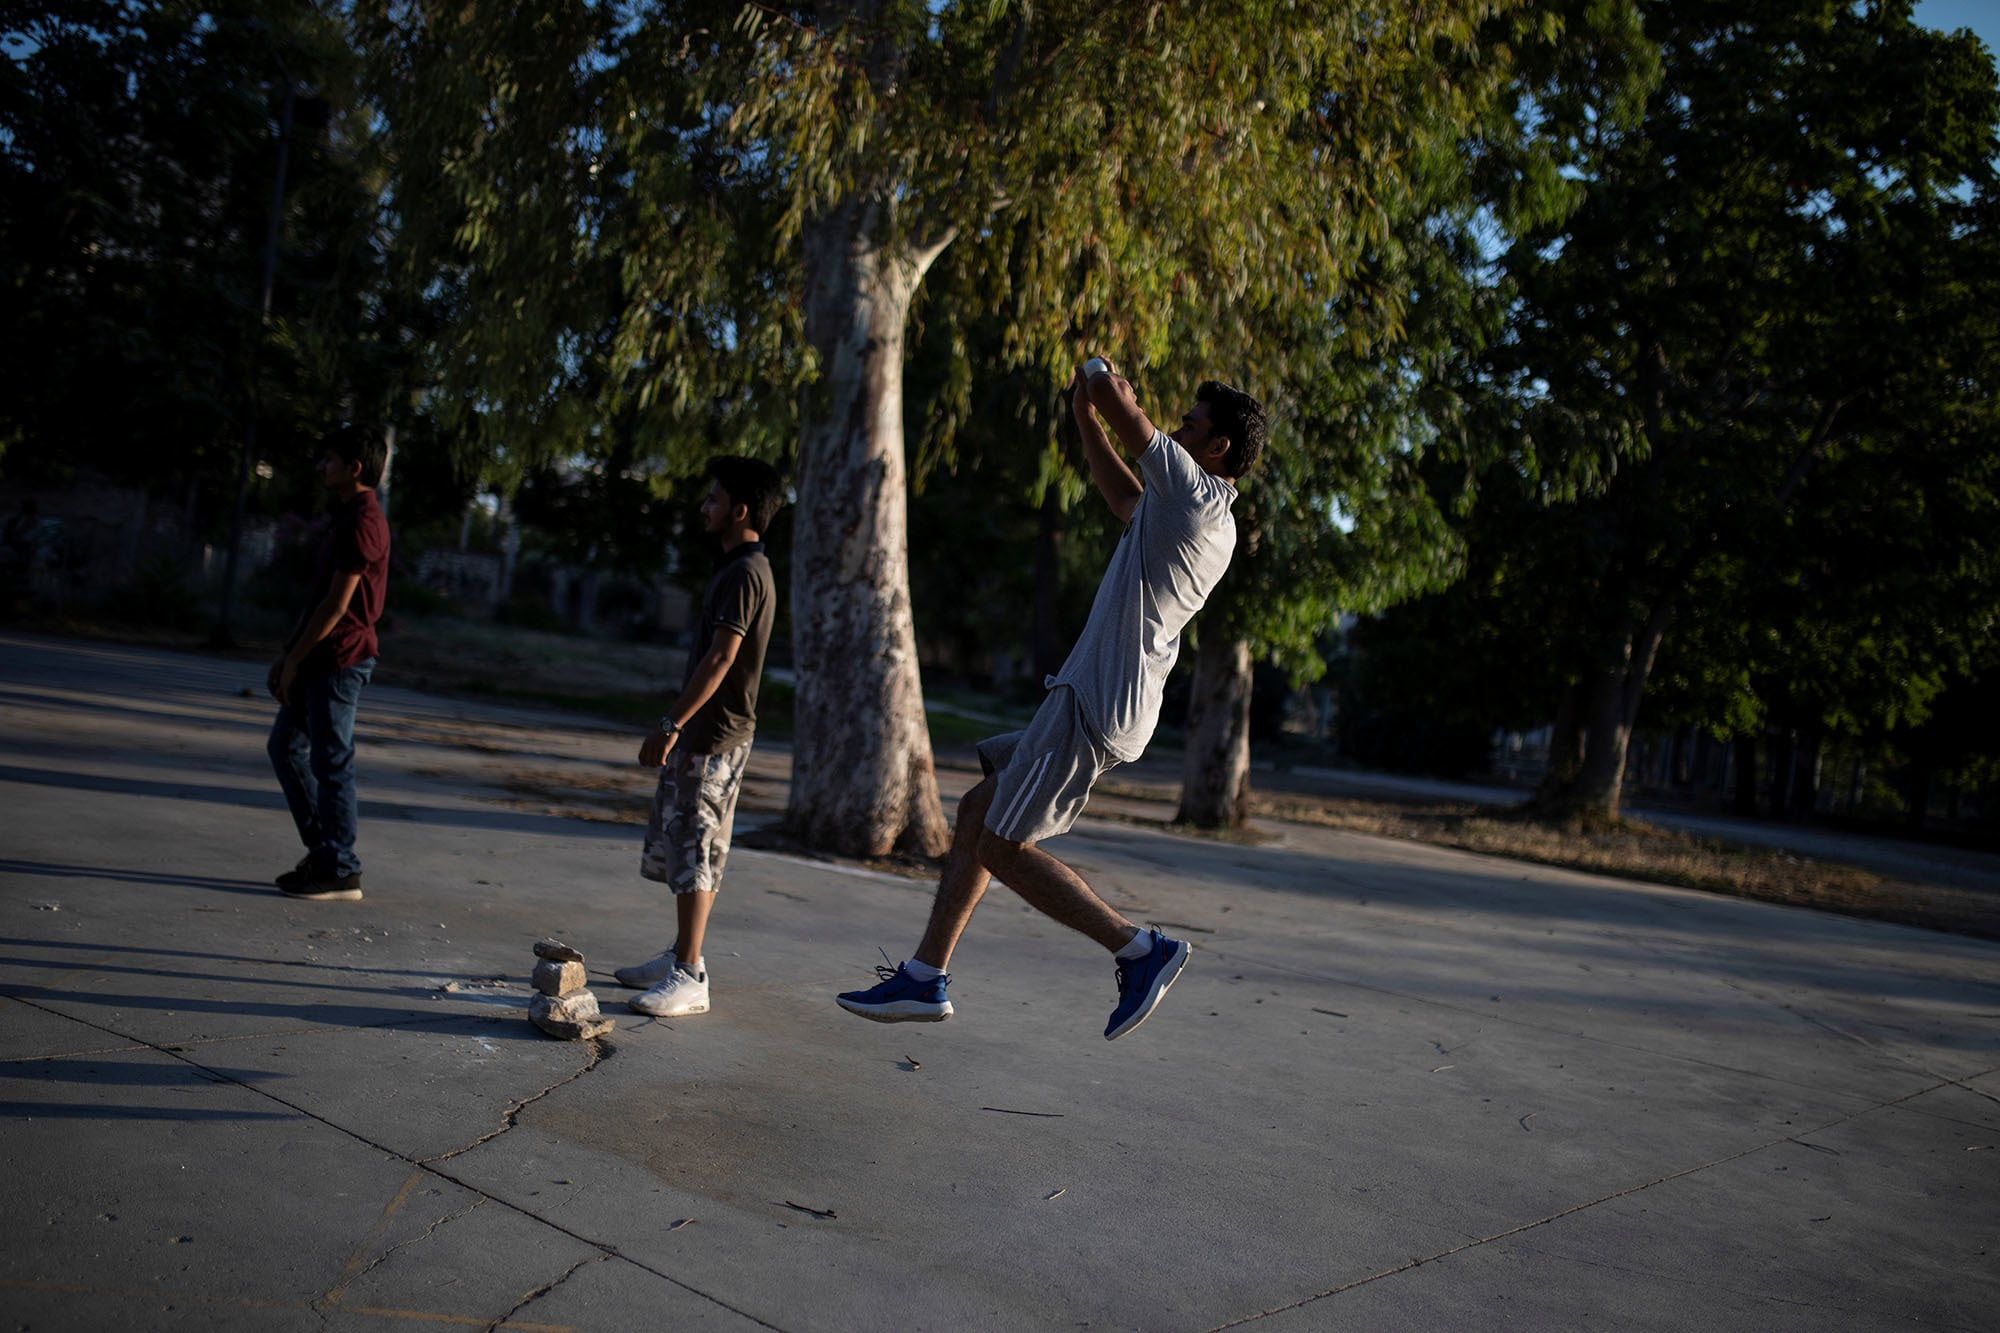 A Pakistani man living in Greece bawls a ball during a tape-ball cricket game in a parking lot in the Tavros neighbourhood in Athens, Greece on June 29, 2019. — Reuters